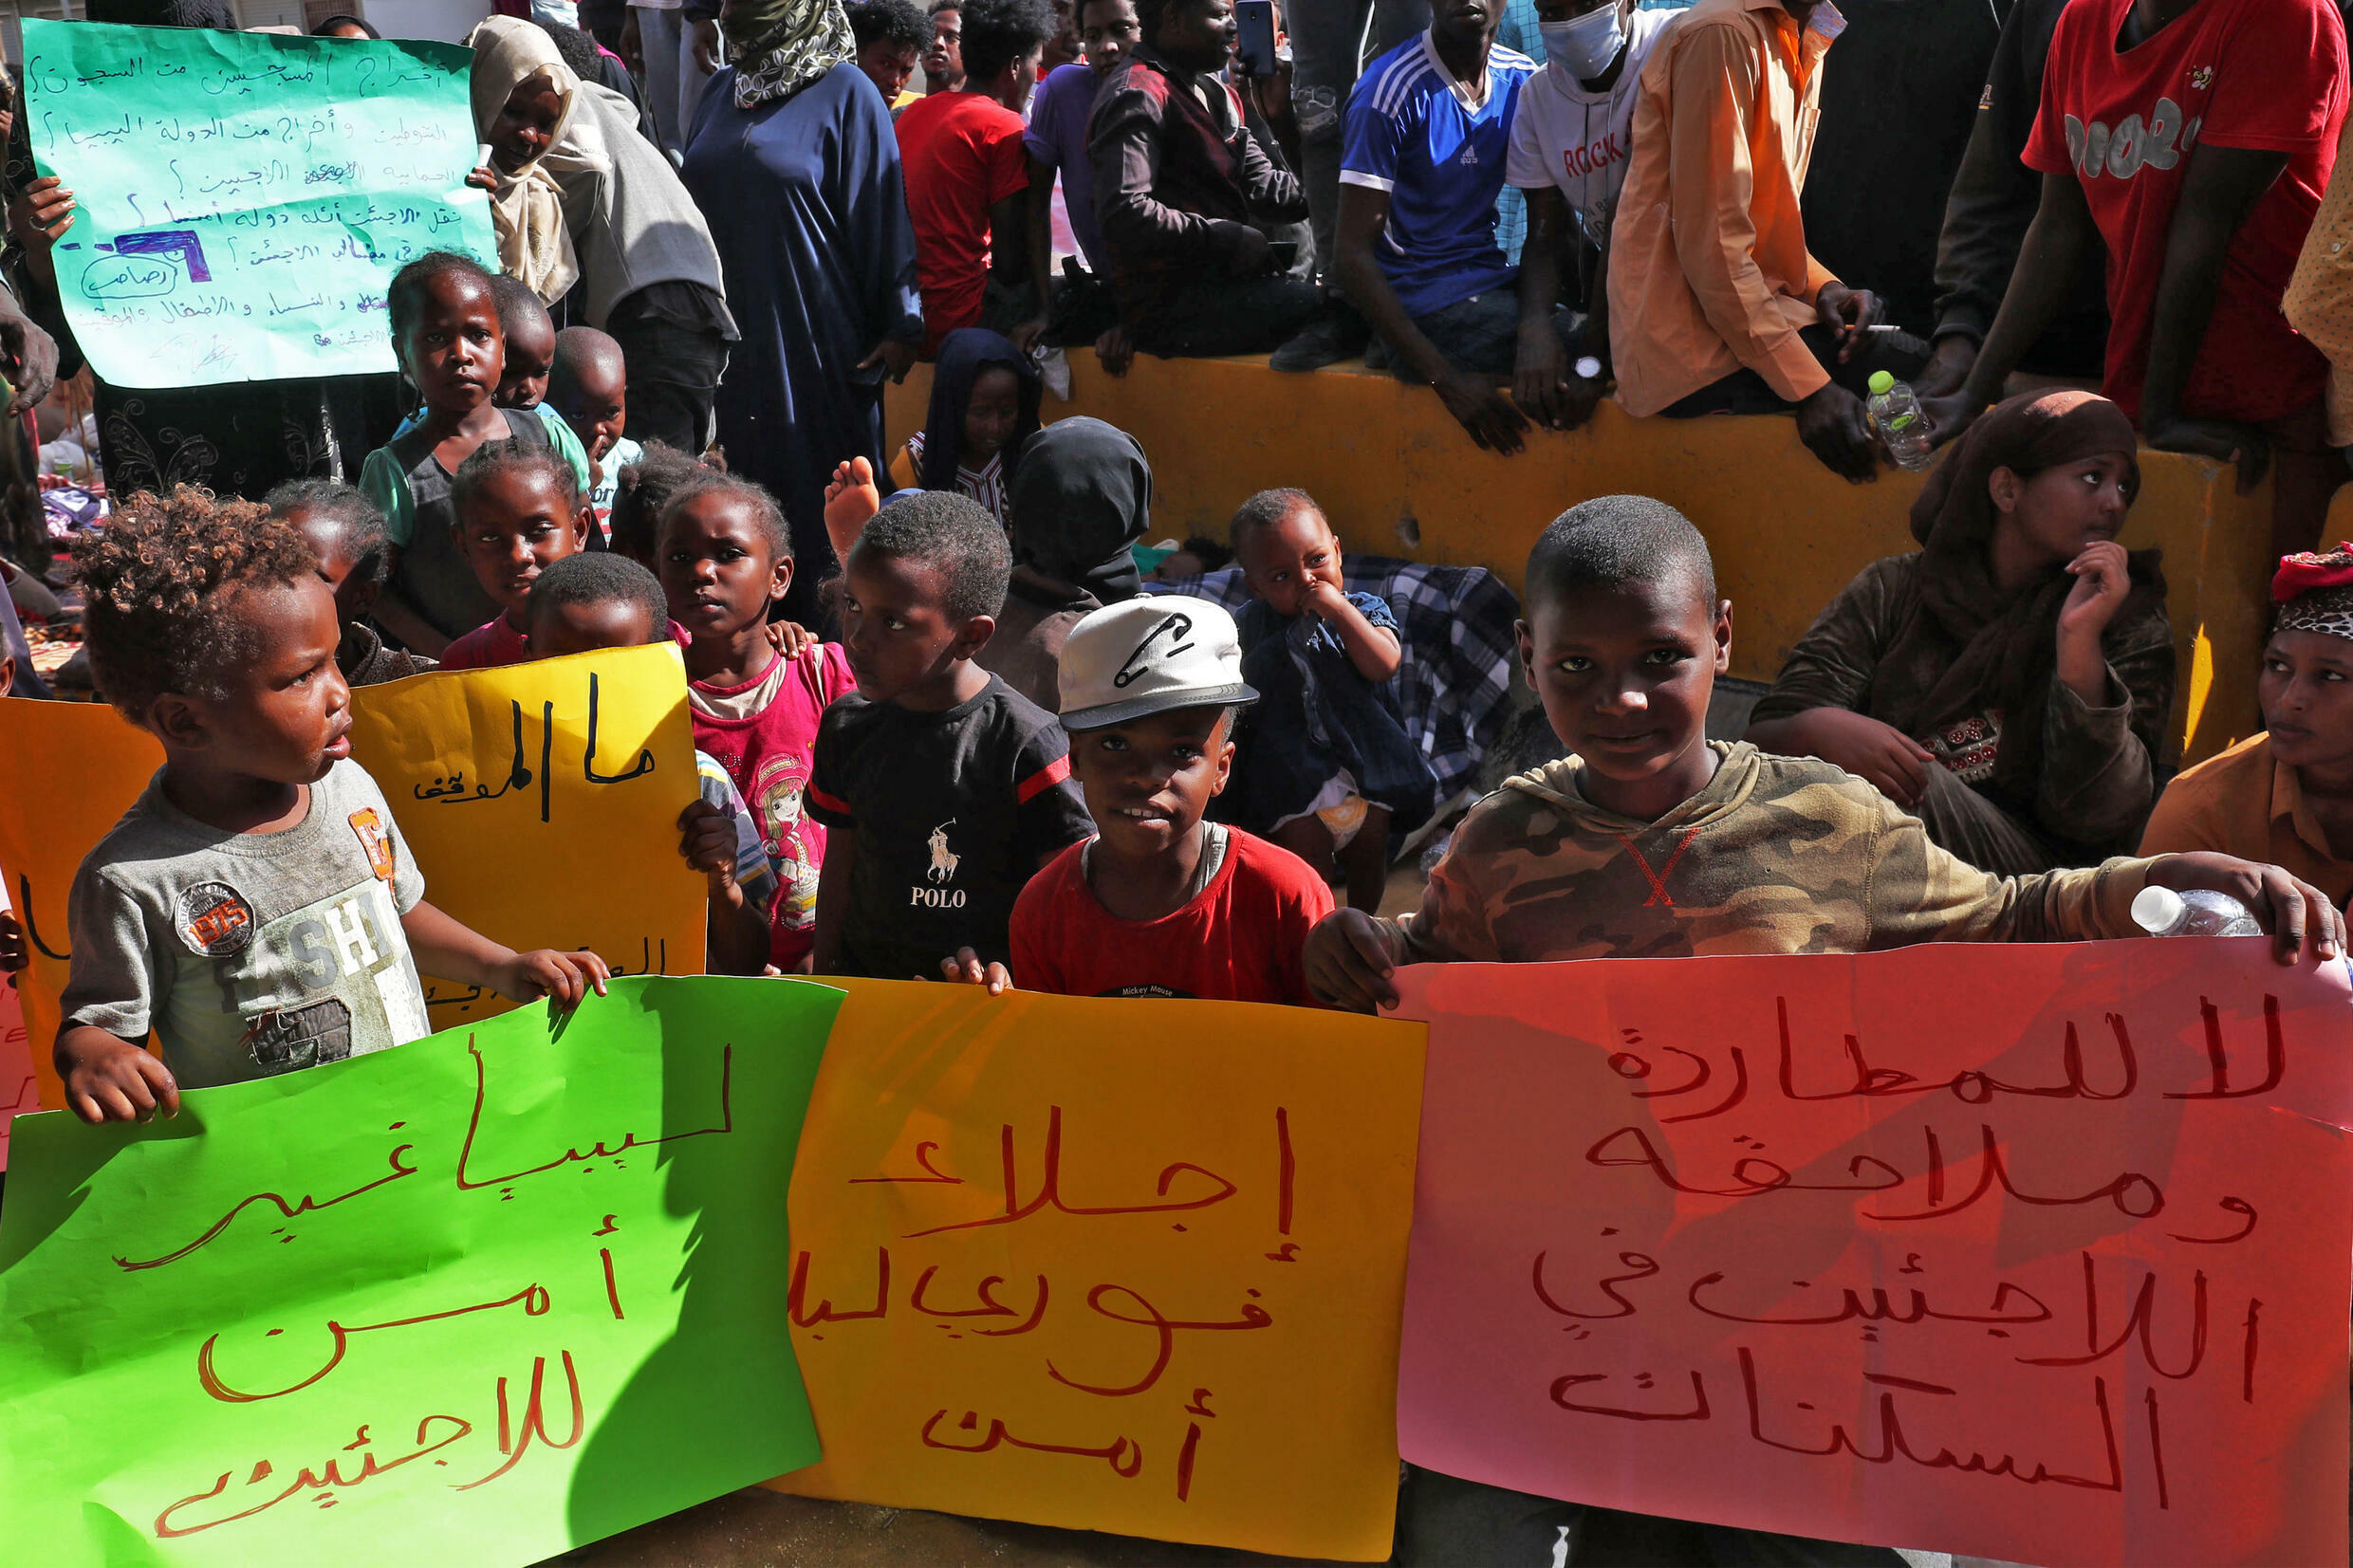 African migrants demonstrate outside the Tripoli office of the UN refugee agency demanding repatriation after Friday's shooting deaths again highlighted the appalling conditions they endure in Libya